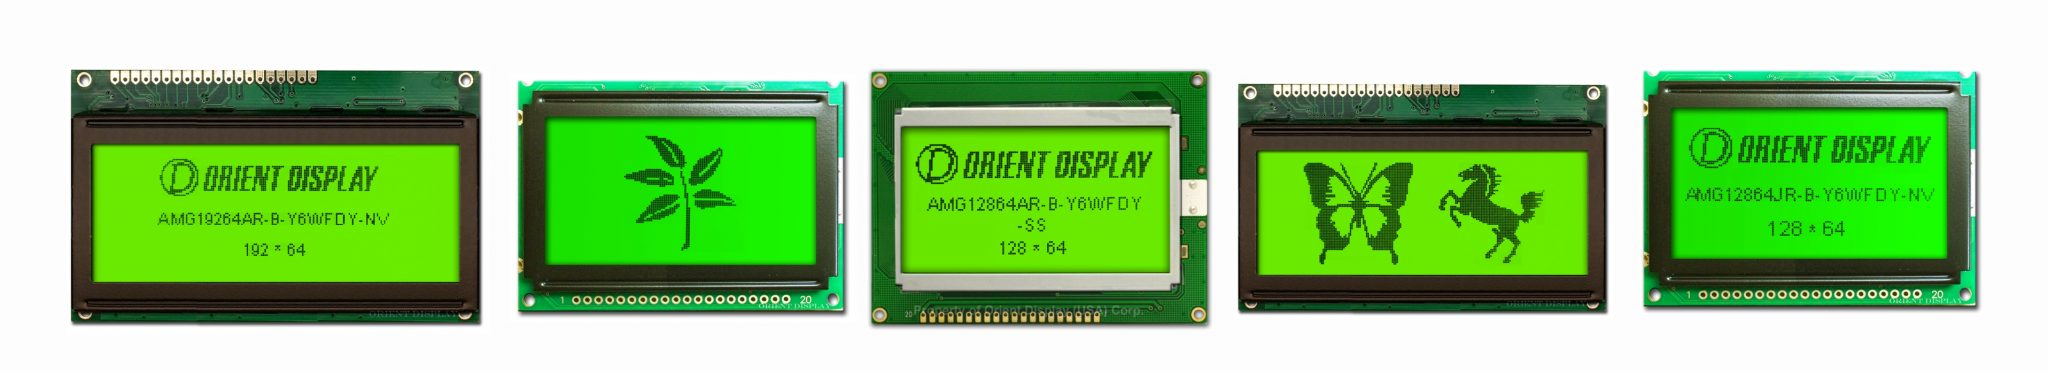 Orient Display: COB/Chip on Board Graphic LCD Display, multiple resolution choices, STN Positive, Yellow Green LED Backlight